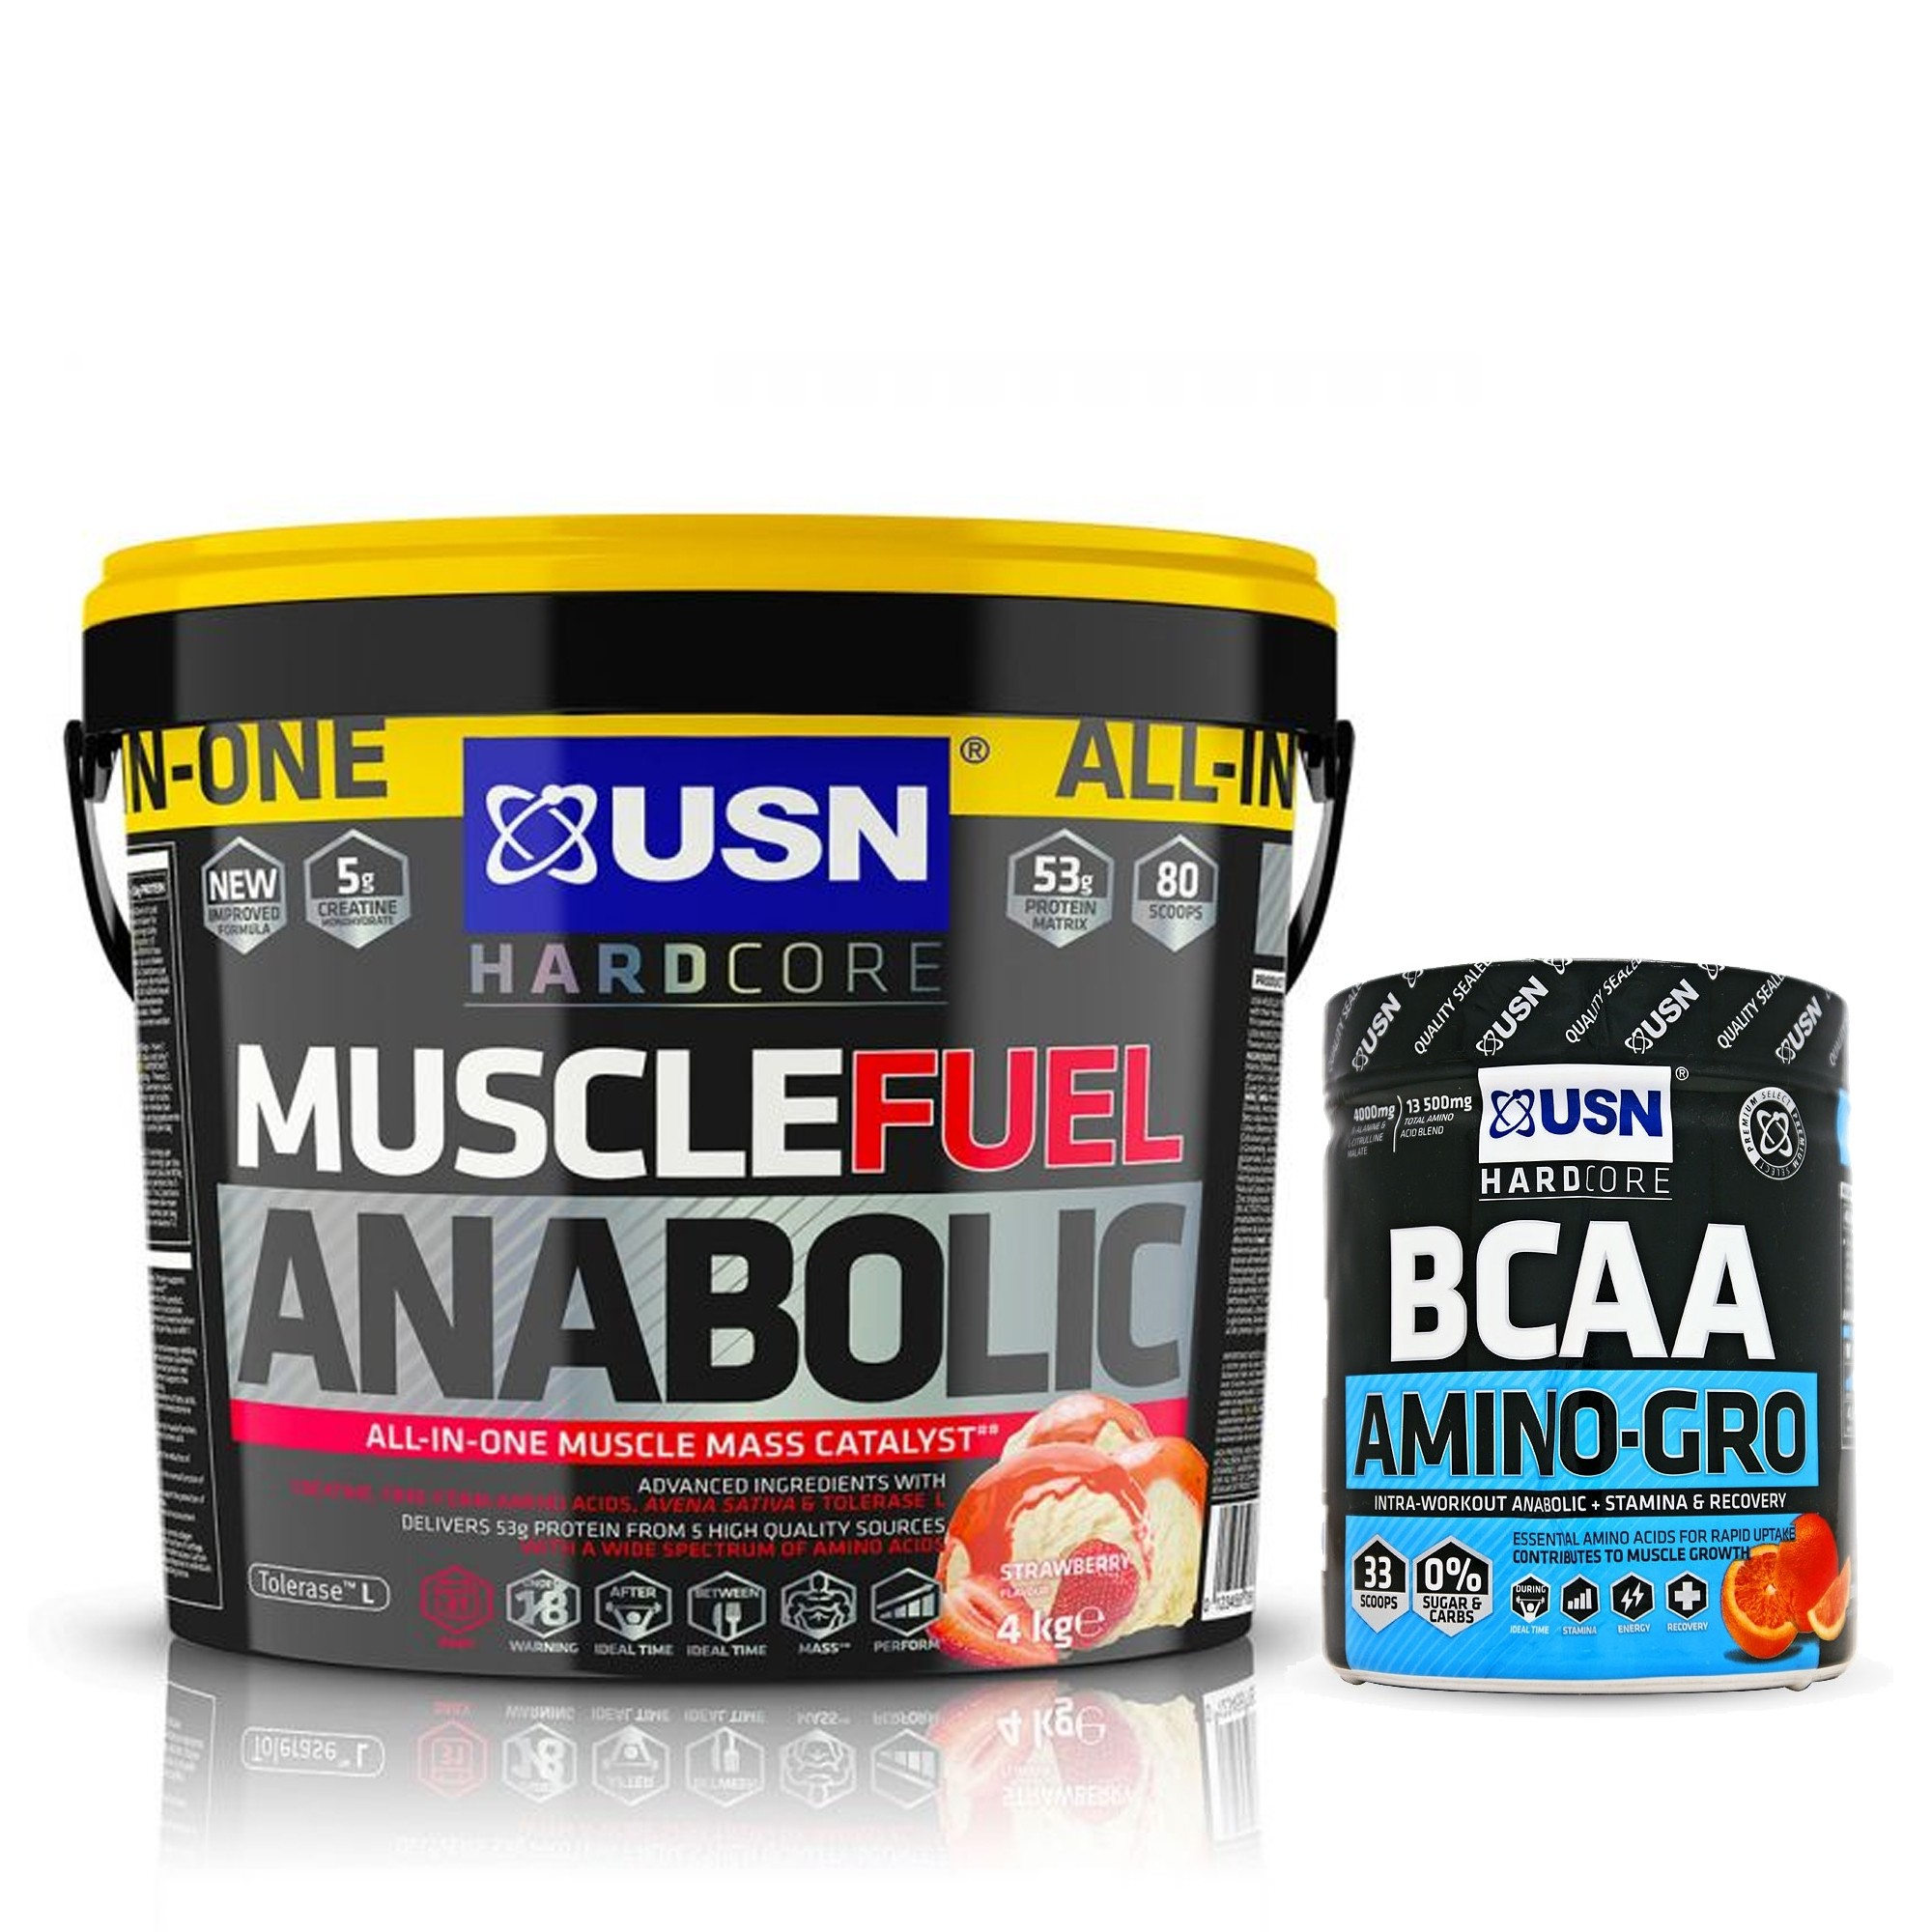 muscle-fuel-and-amino-gro